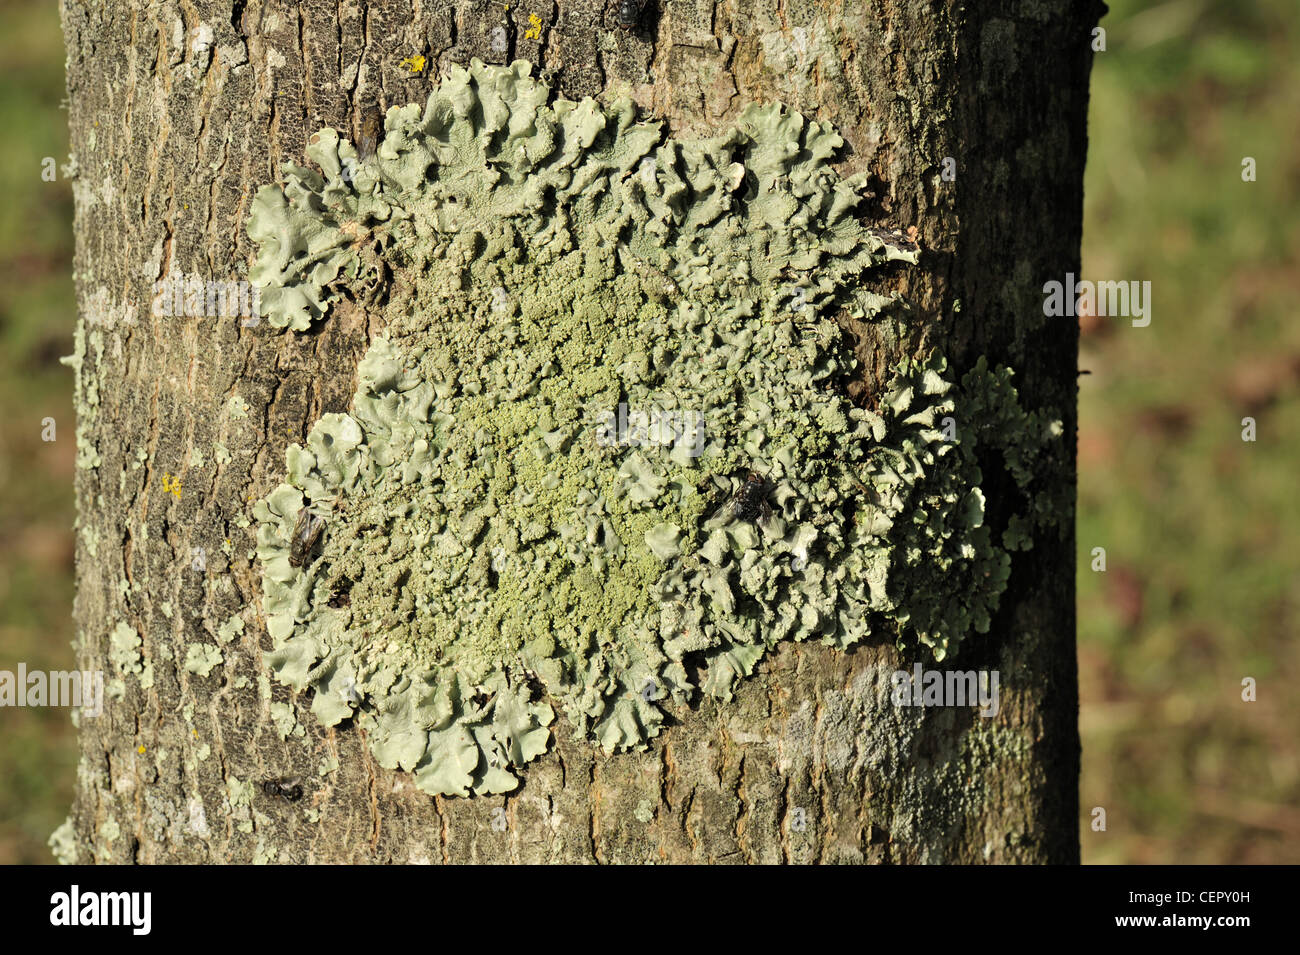 Small patch of lichen on the southern side of a maple tree trunk - Stock Image